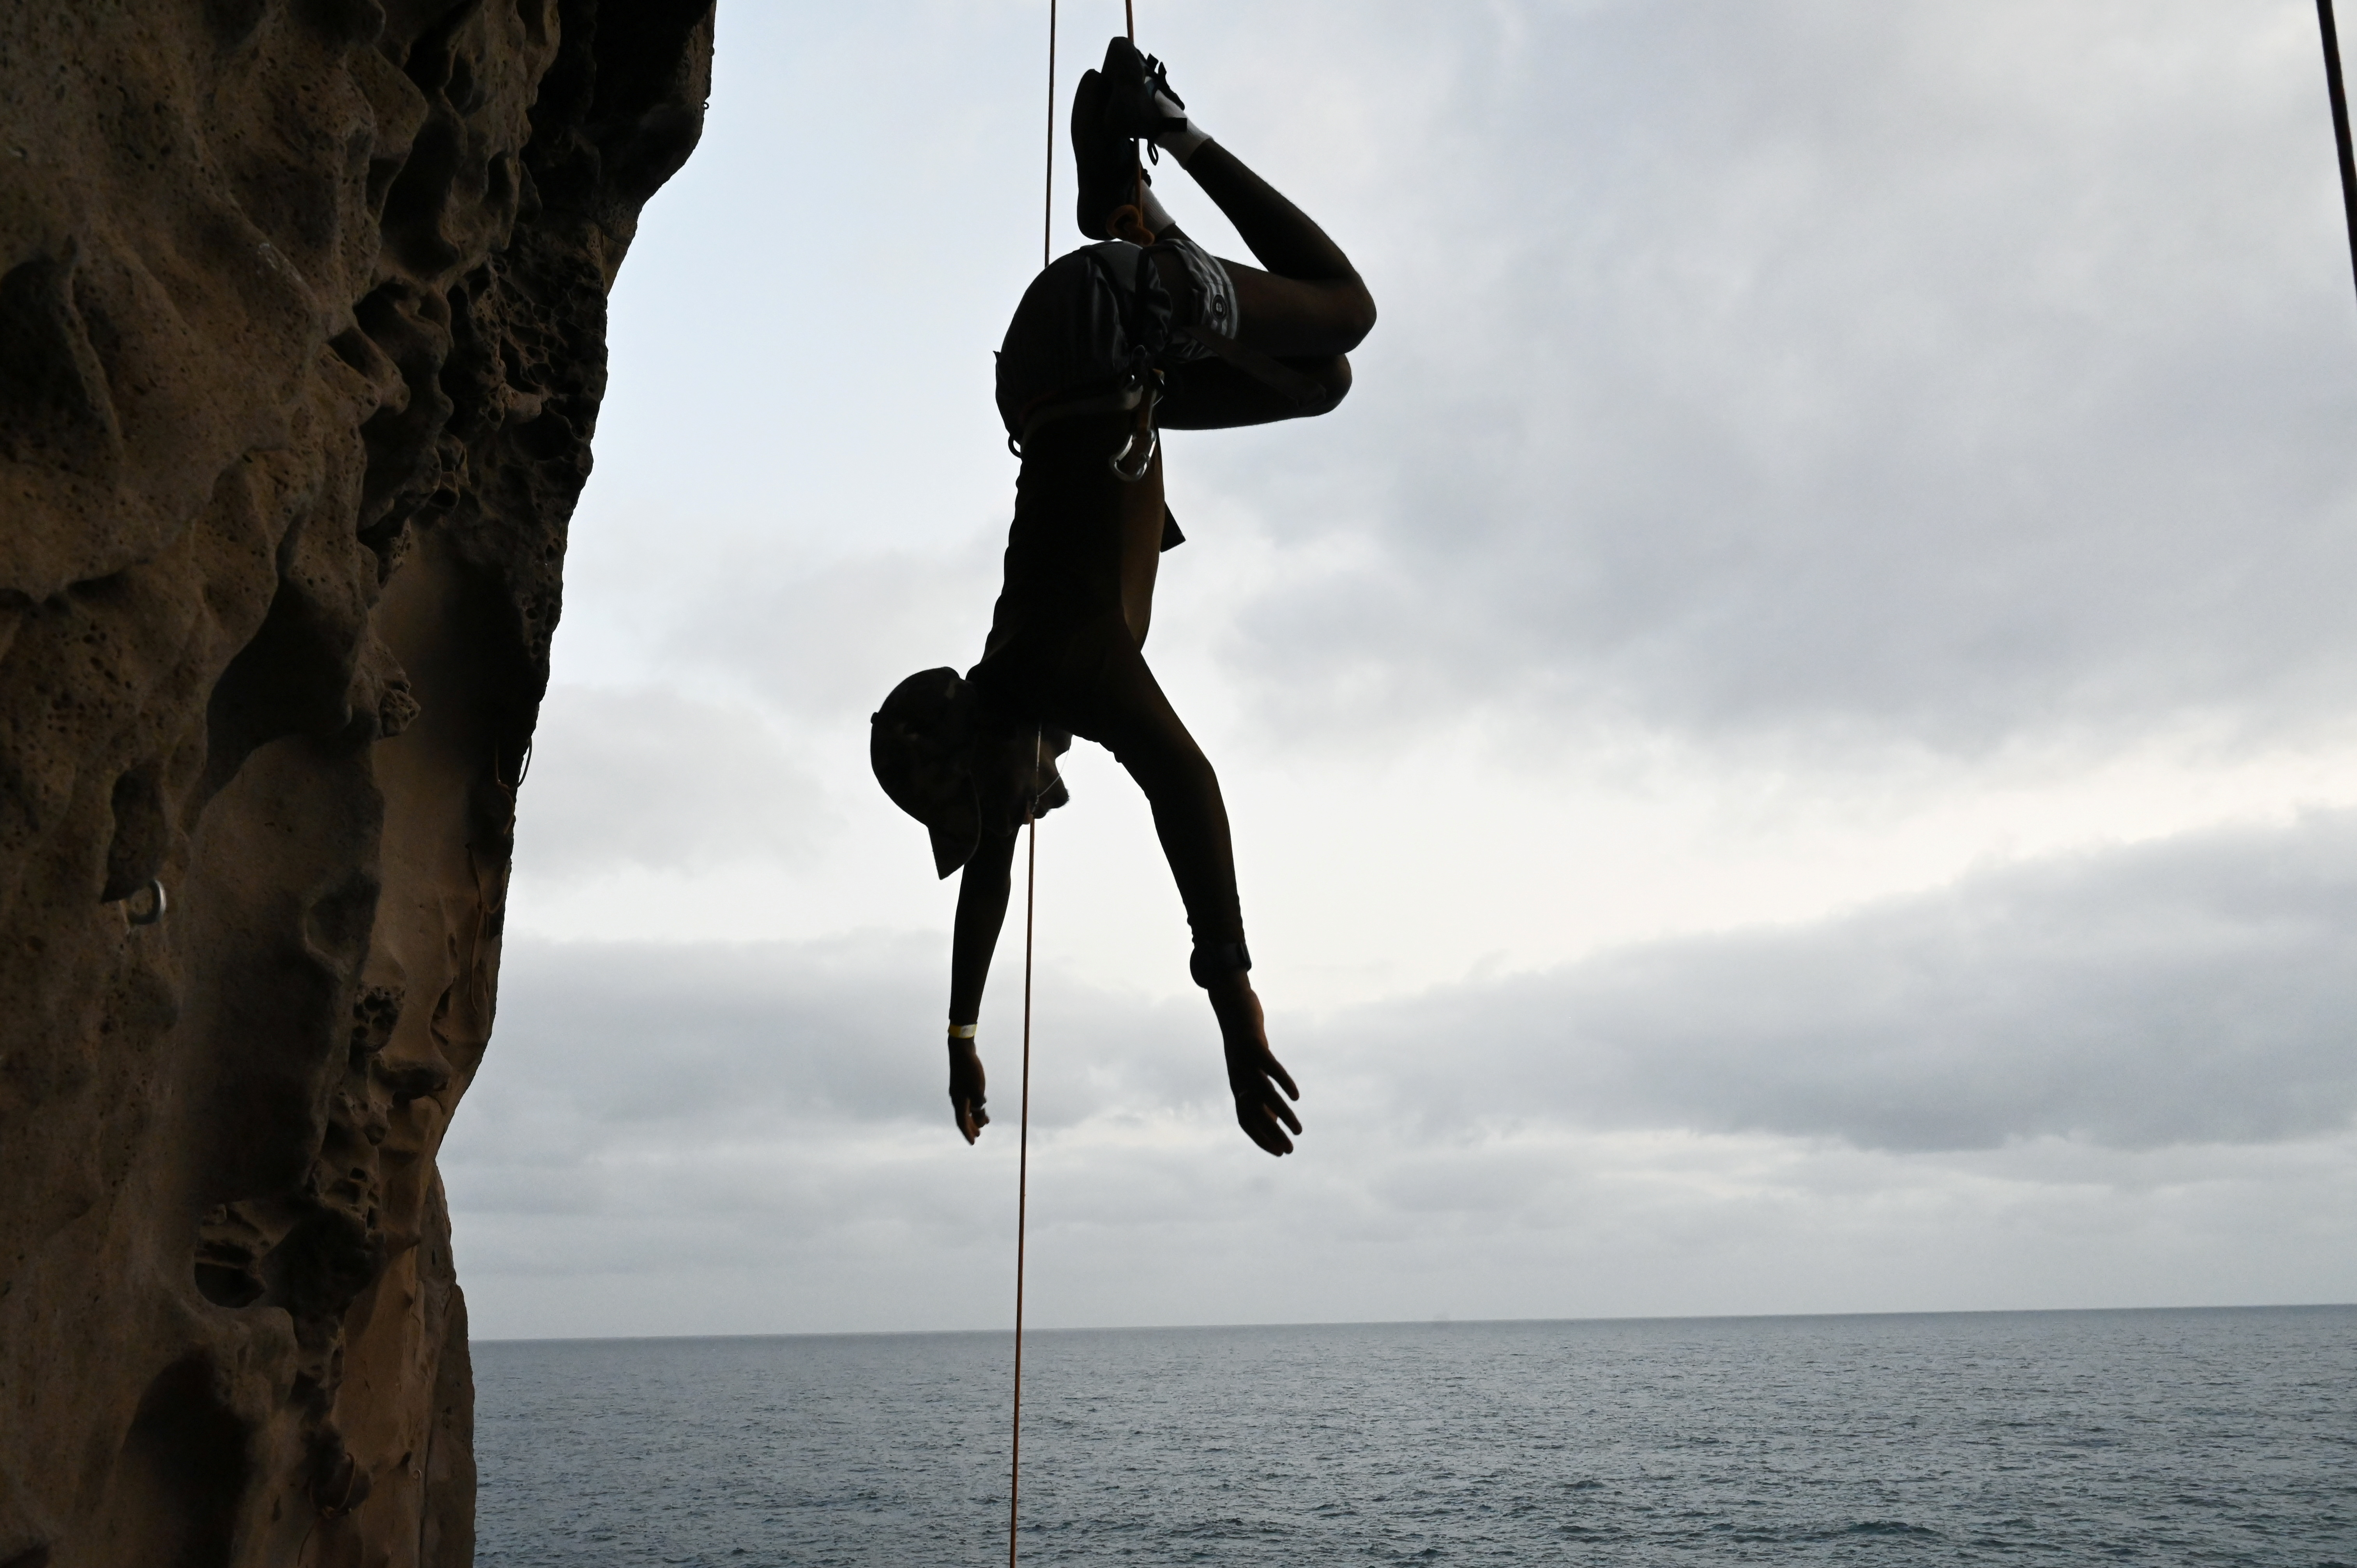 Senegalese rock climber Doudou Diop hangs upside-down from a rope at the Mamelles cliffs in Dakar, Senegal, July 4, 2021. REUTERS/Cooper Inveen